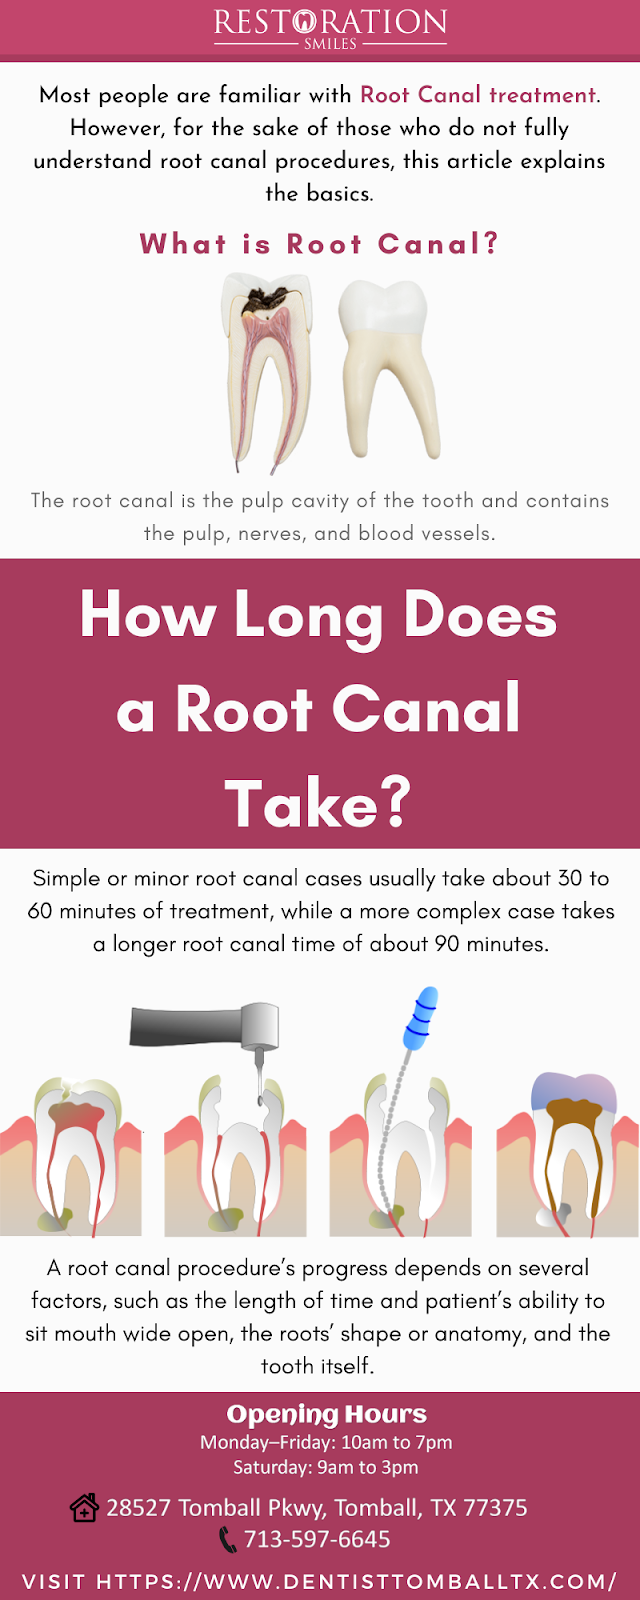 How Long Does a Root Canal Take?